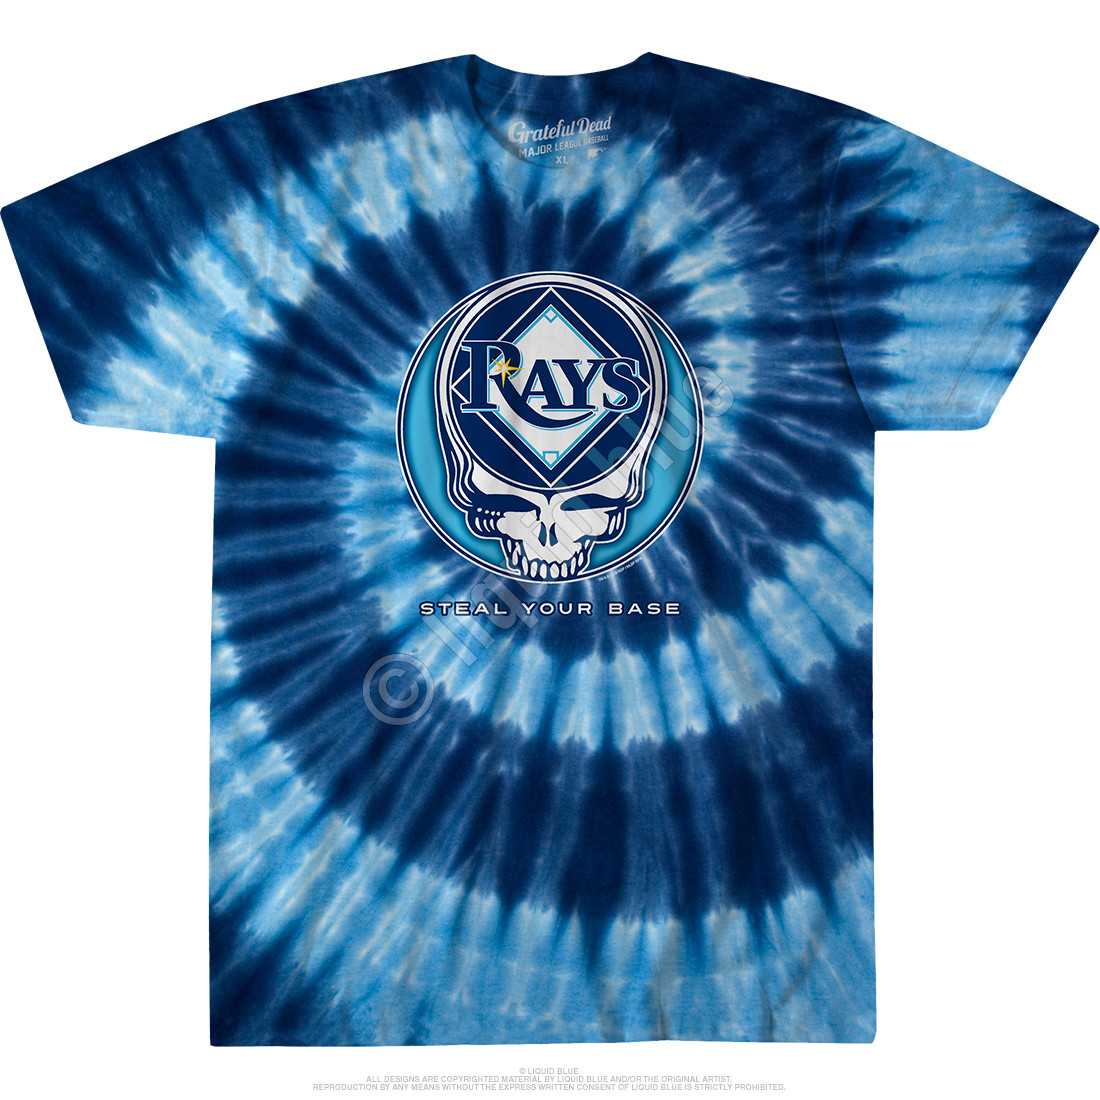 Tampa Bay Rays Steal Your Base Tie-Dye T-Shirt